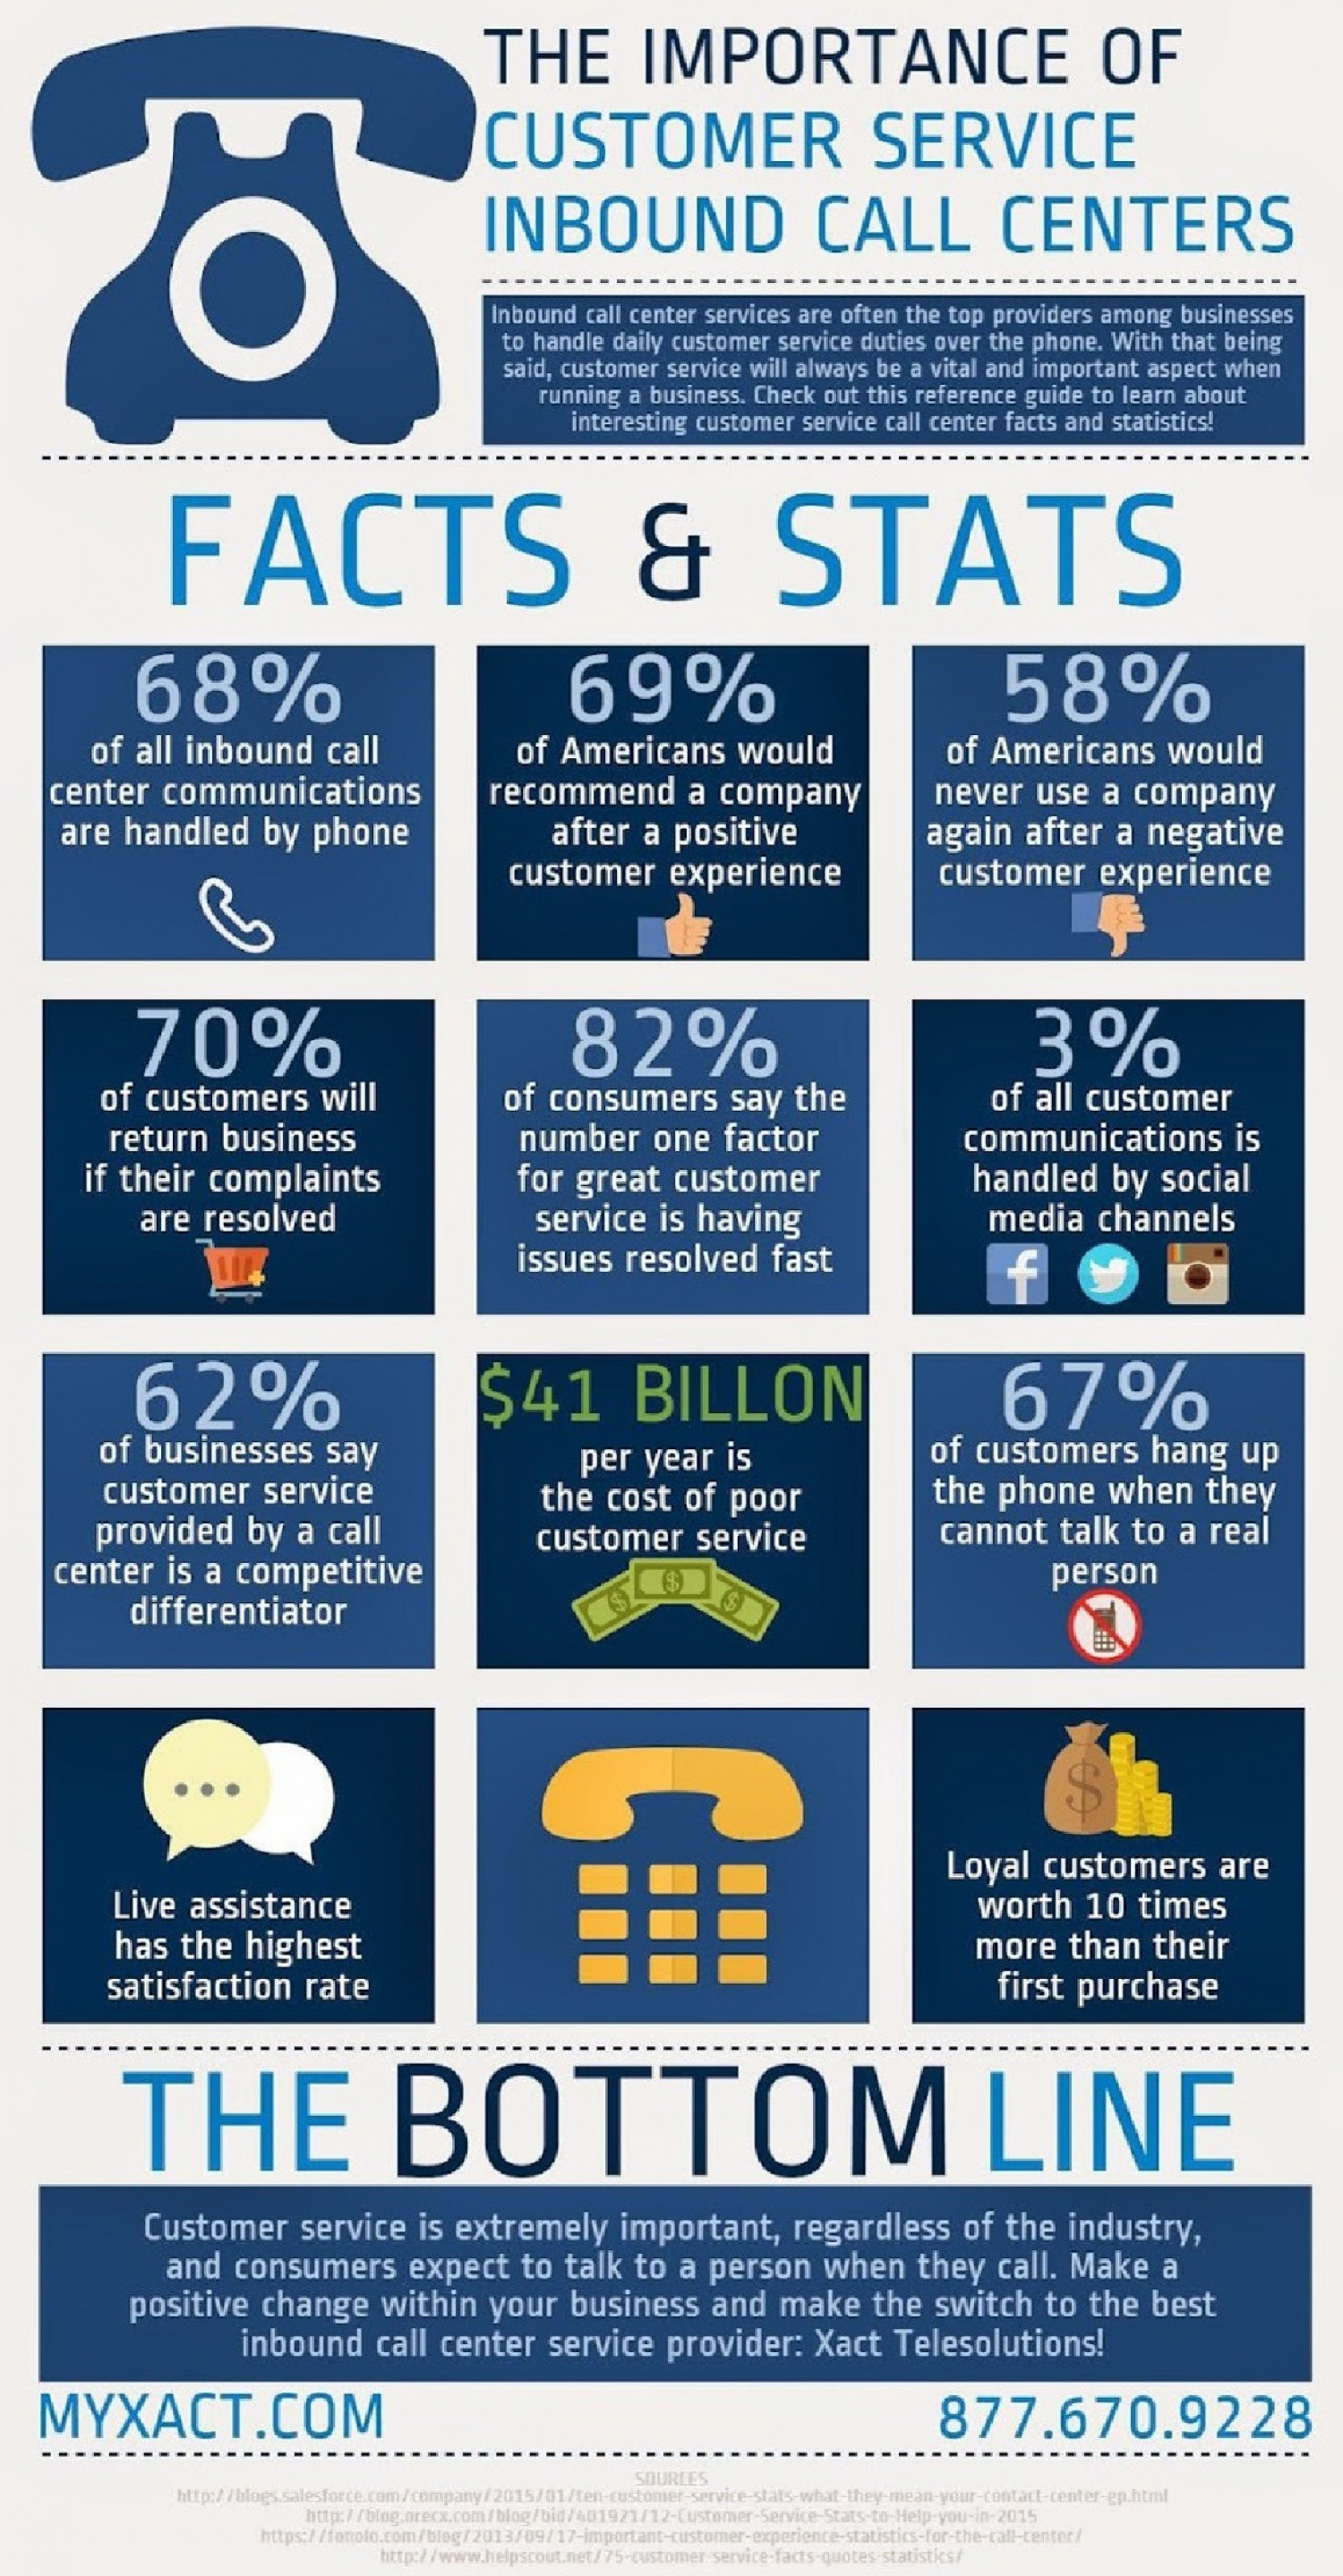 The Importance of Customer Service Inbound Call Centers Infographic